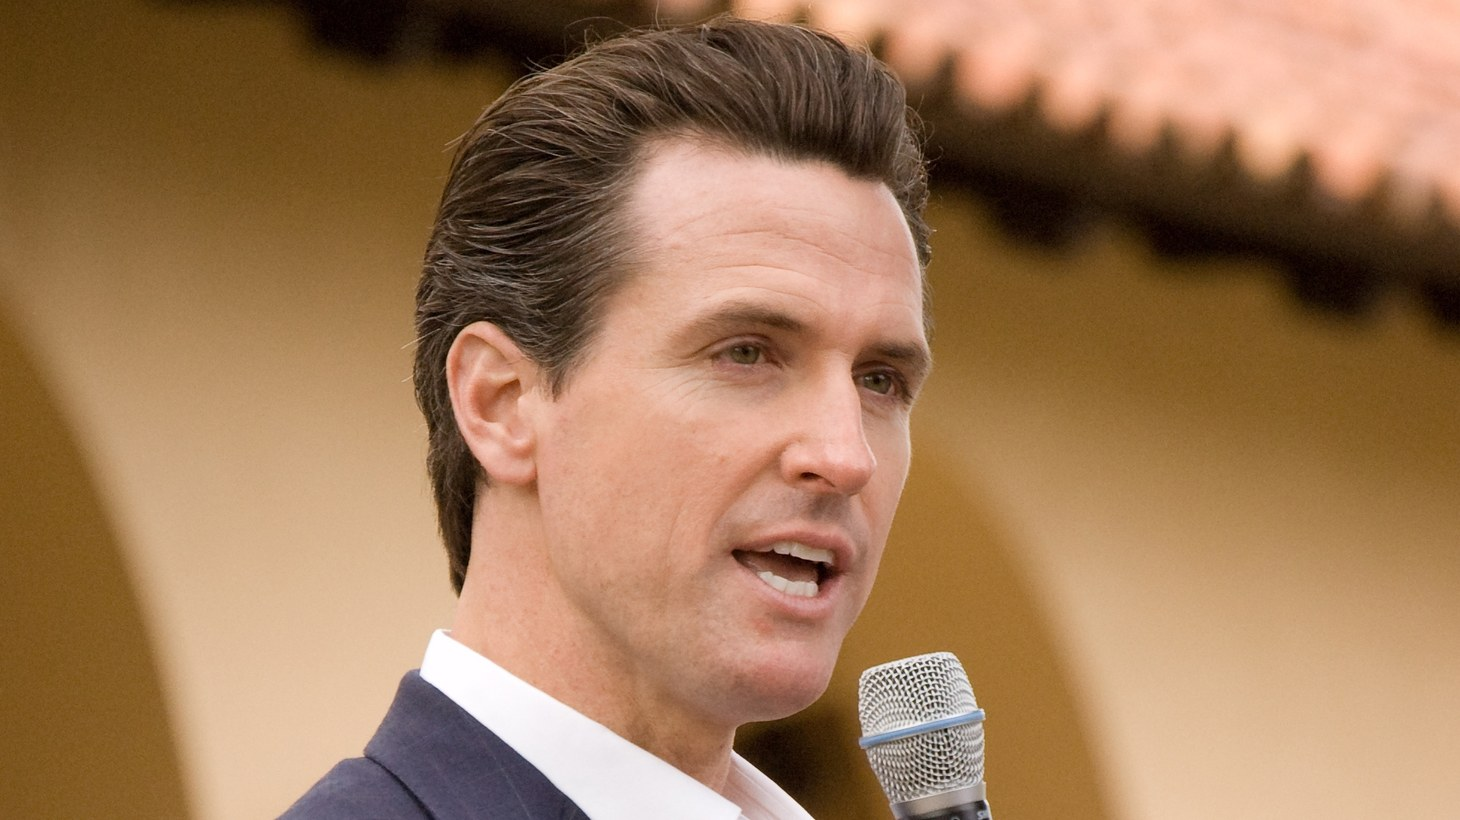 Governor Gavin Newsom today announced a halt to the death penalty in California.